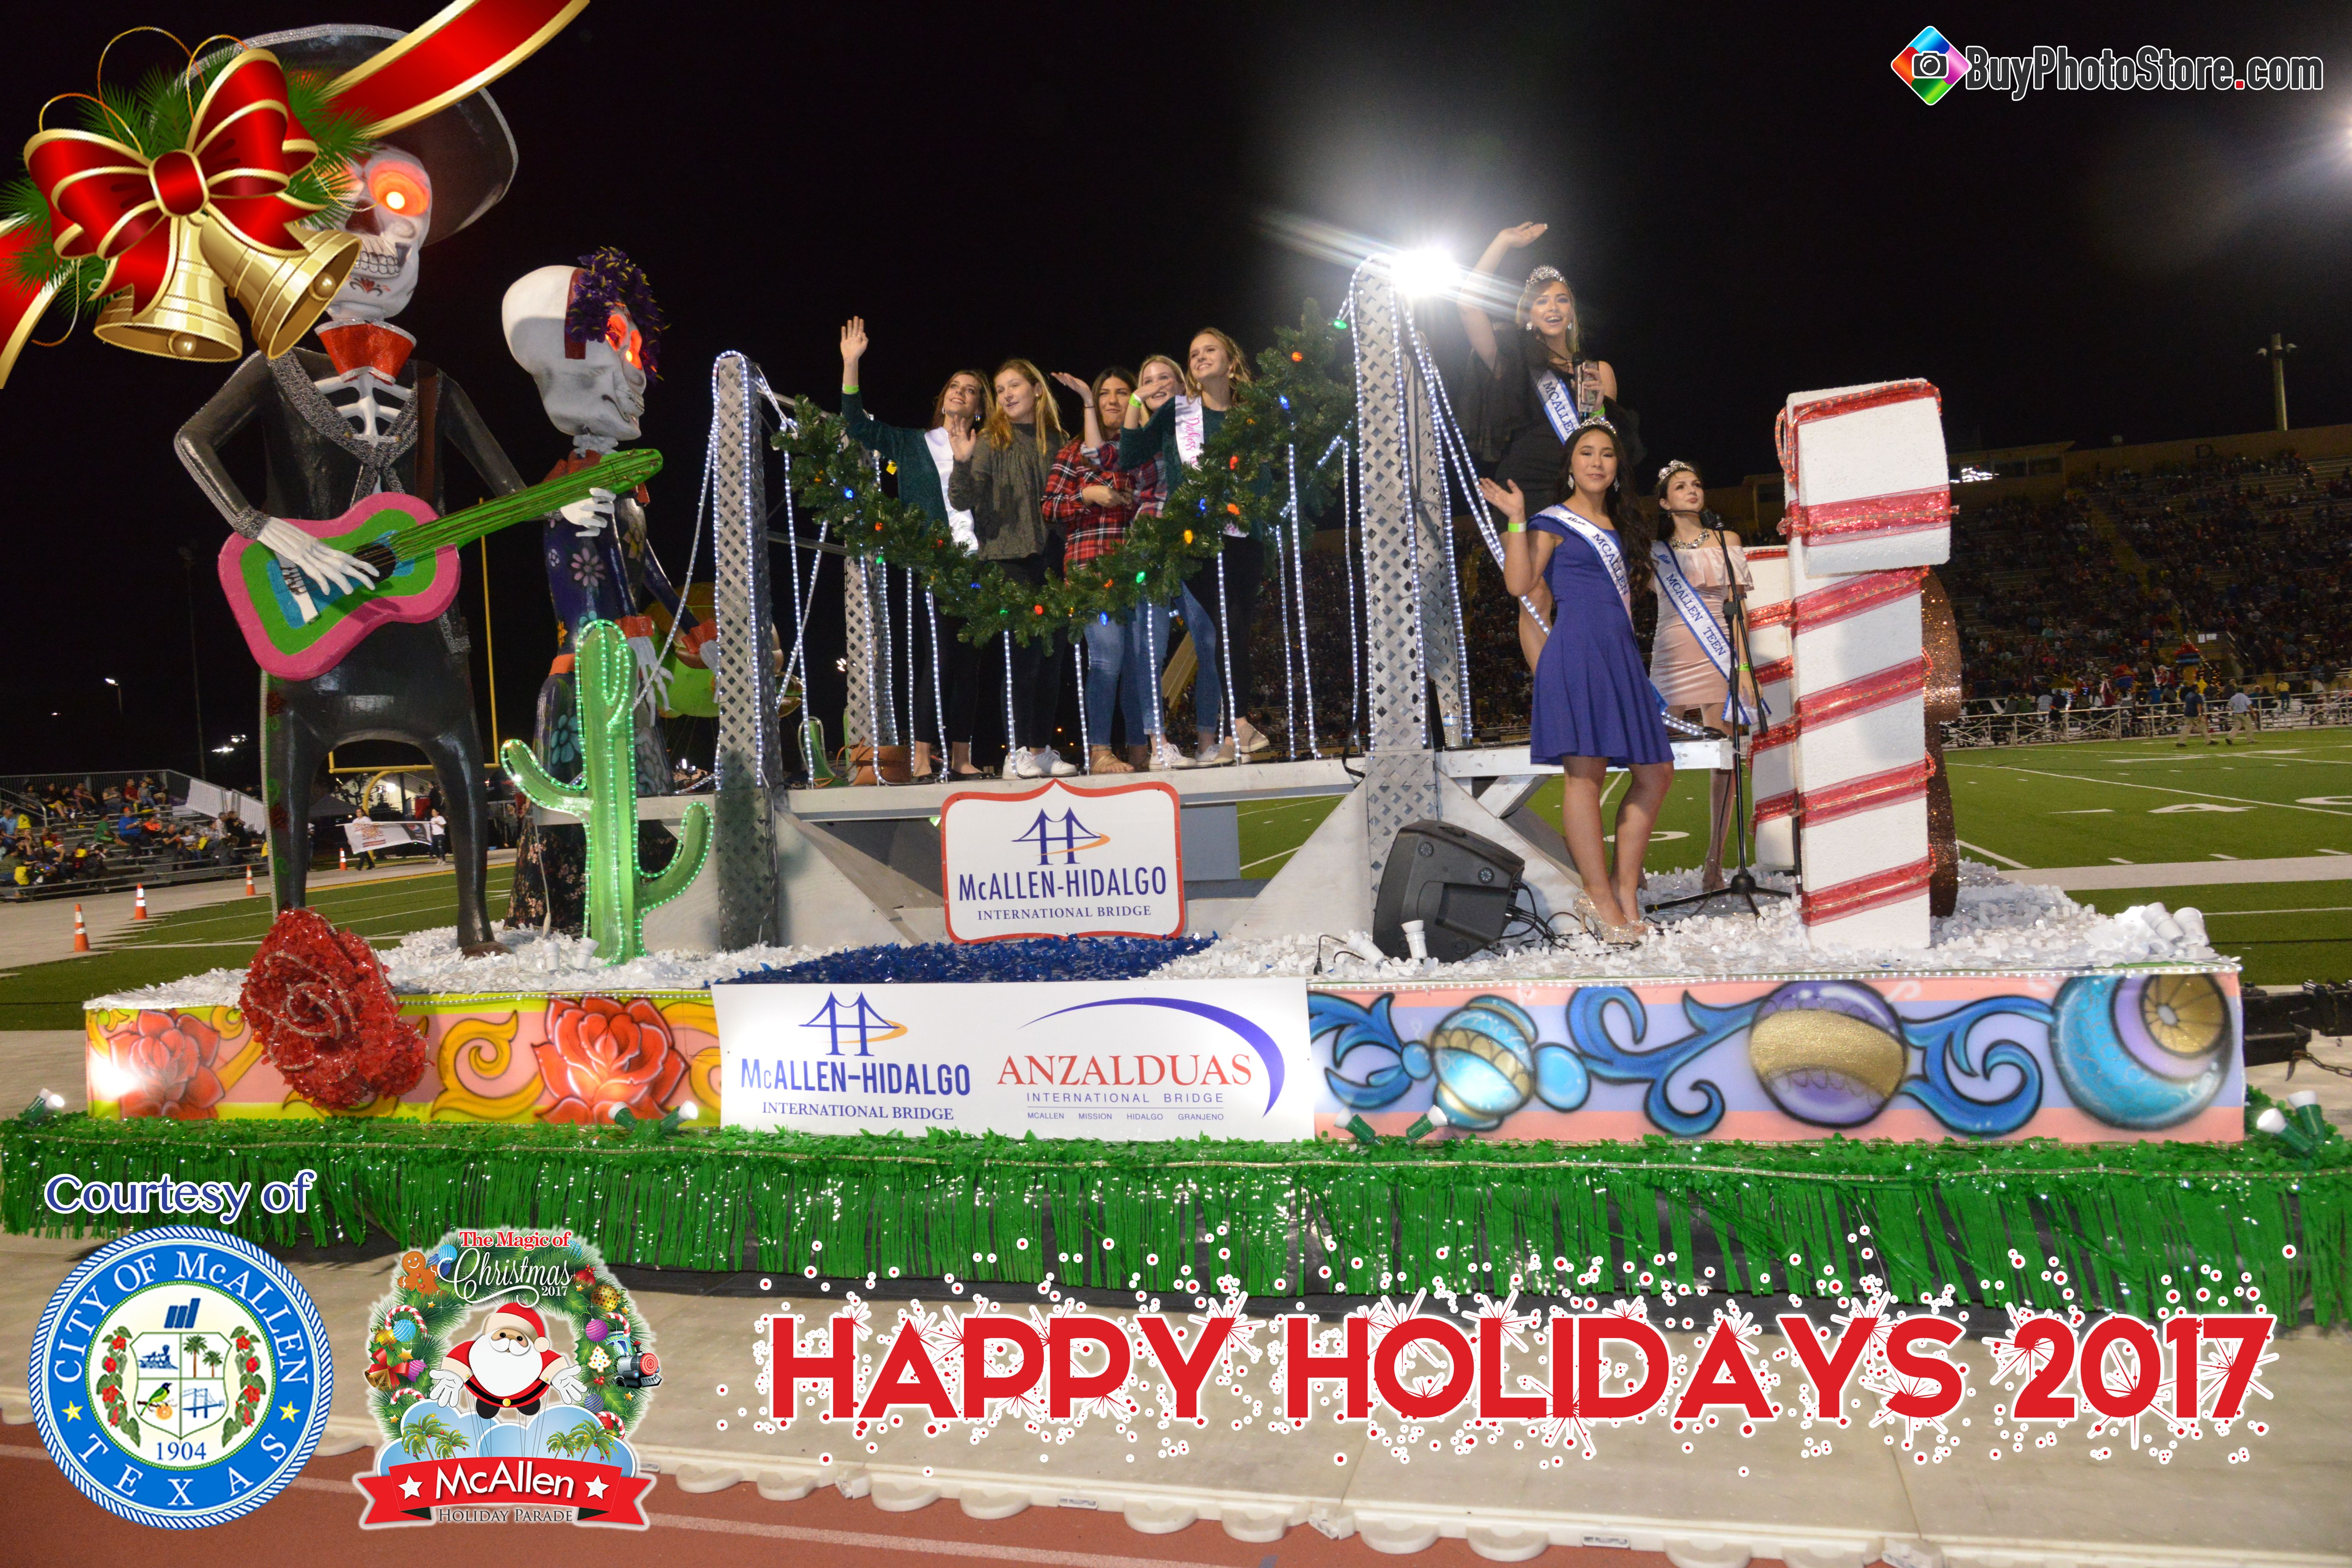 McAllen Holiday Parade 2017 – Part III